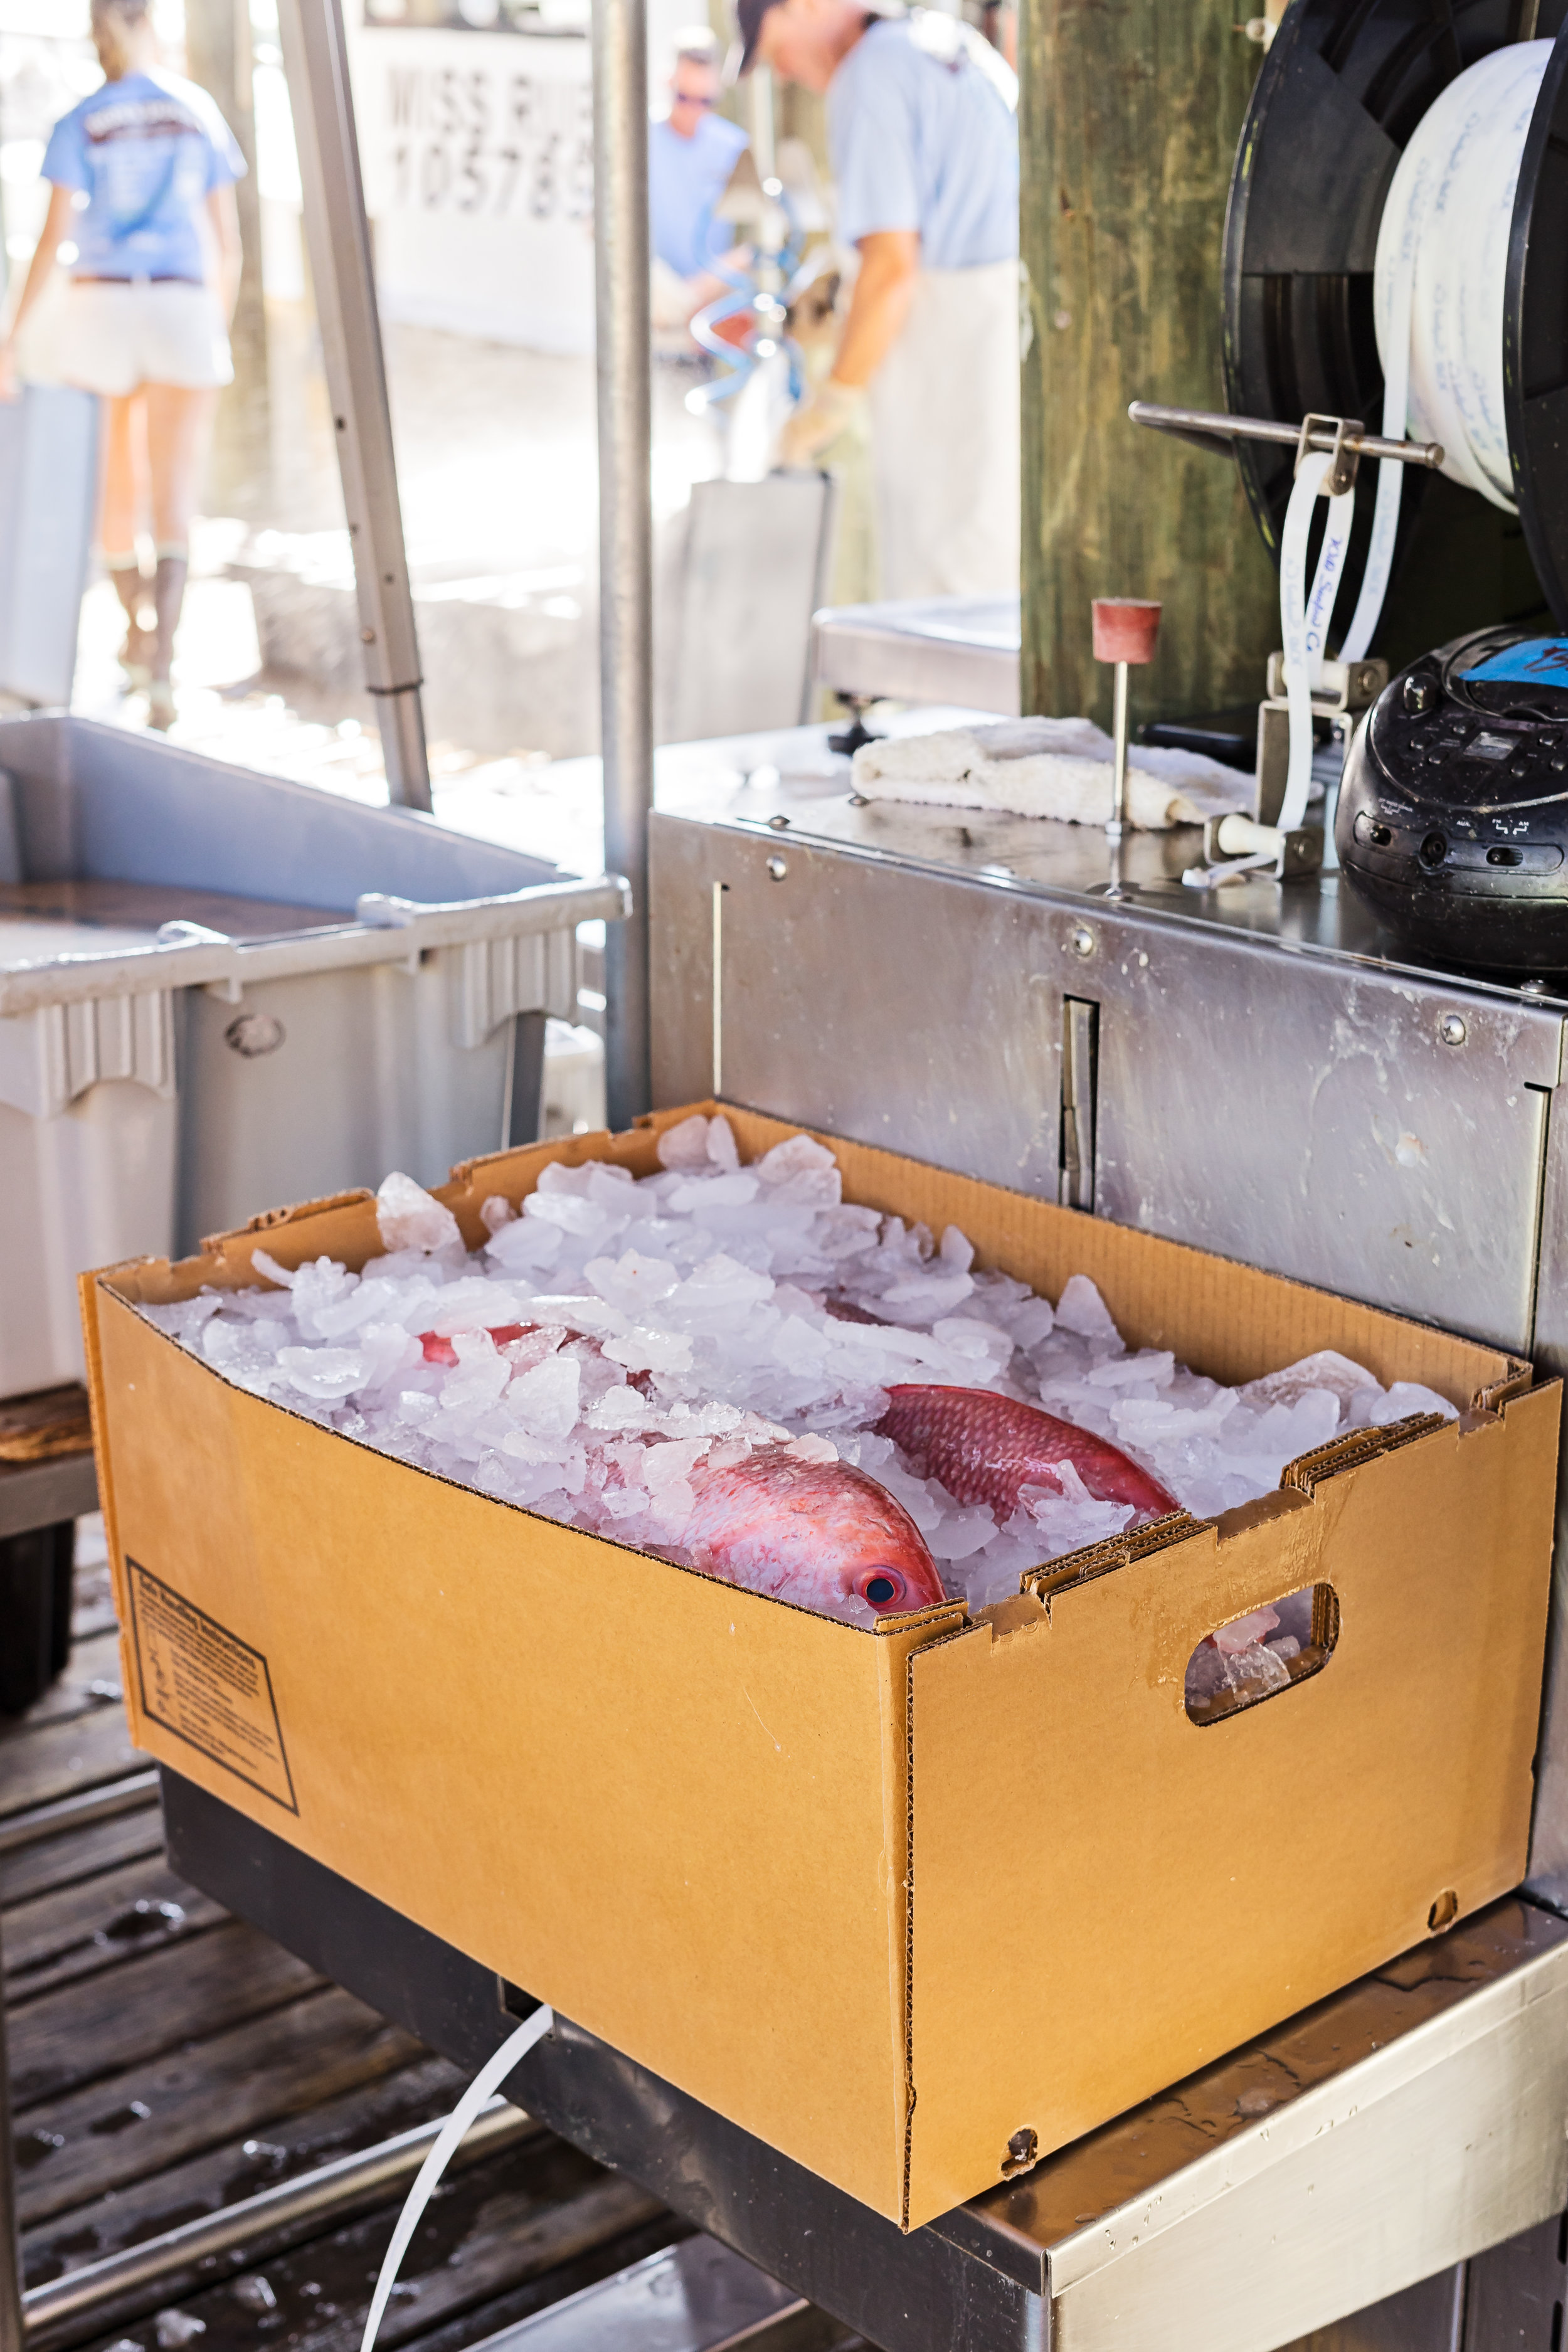 Fish being iced down for shipment.